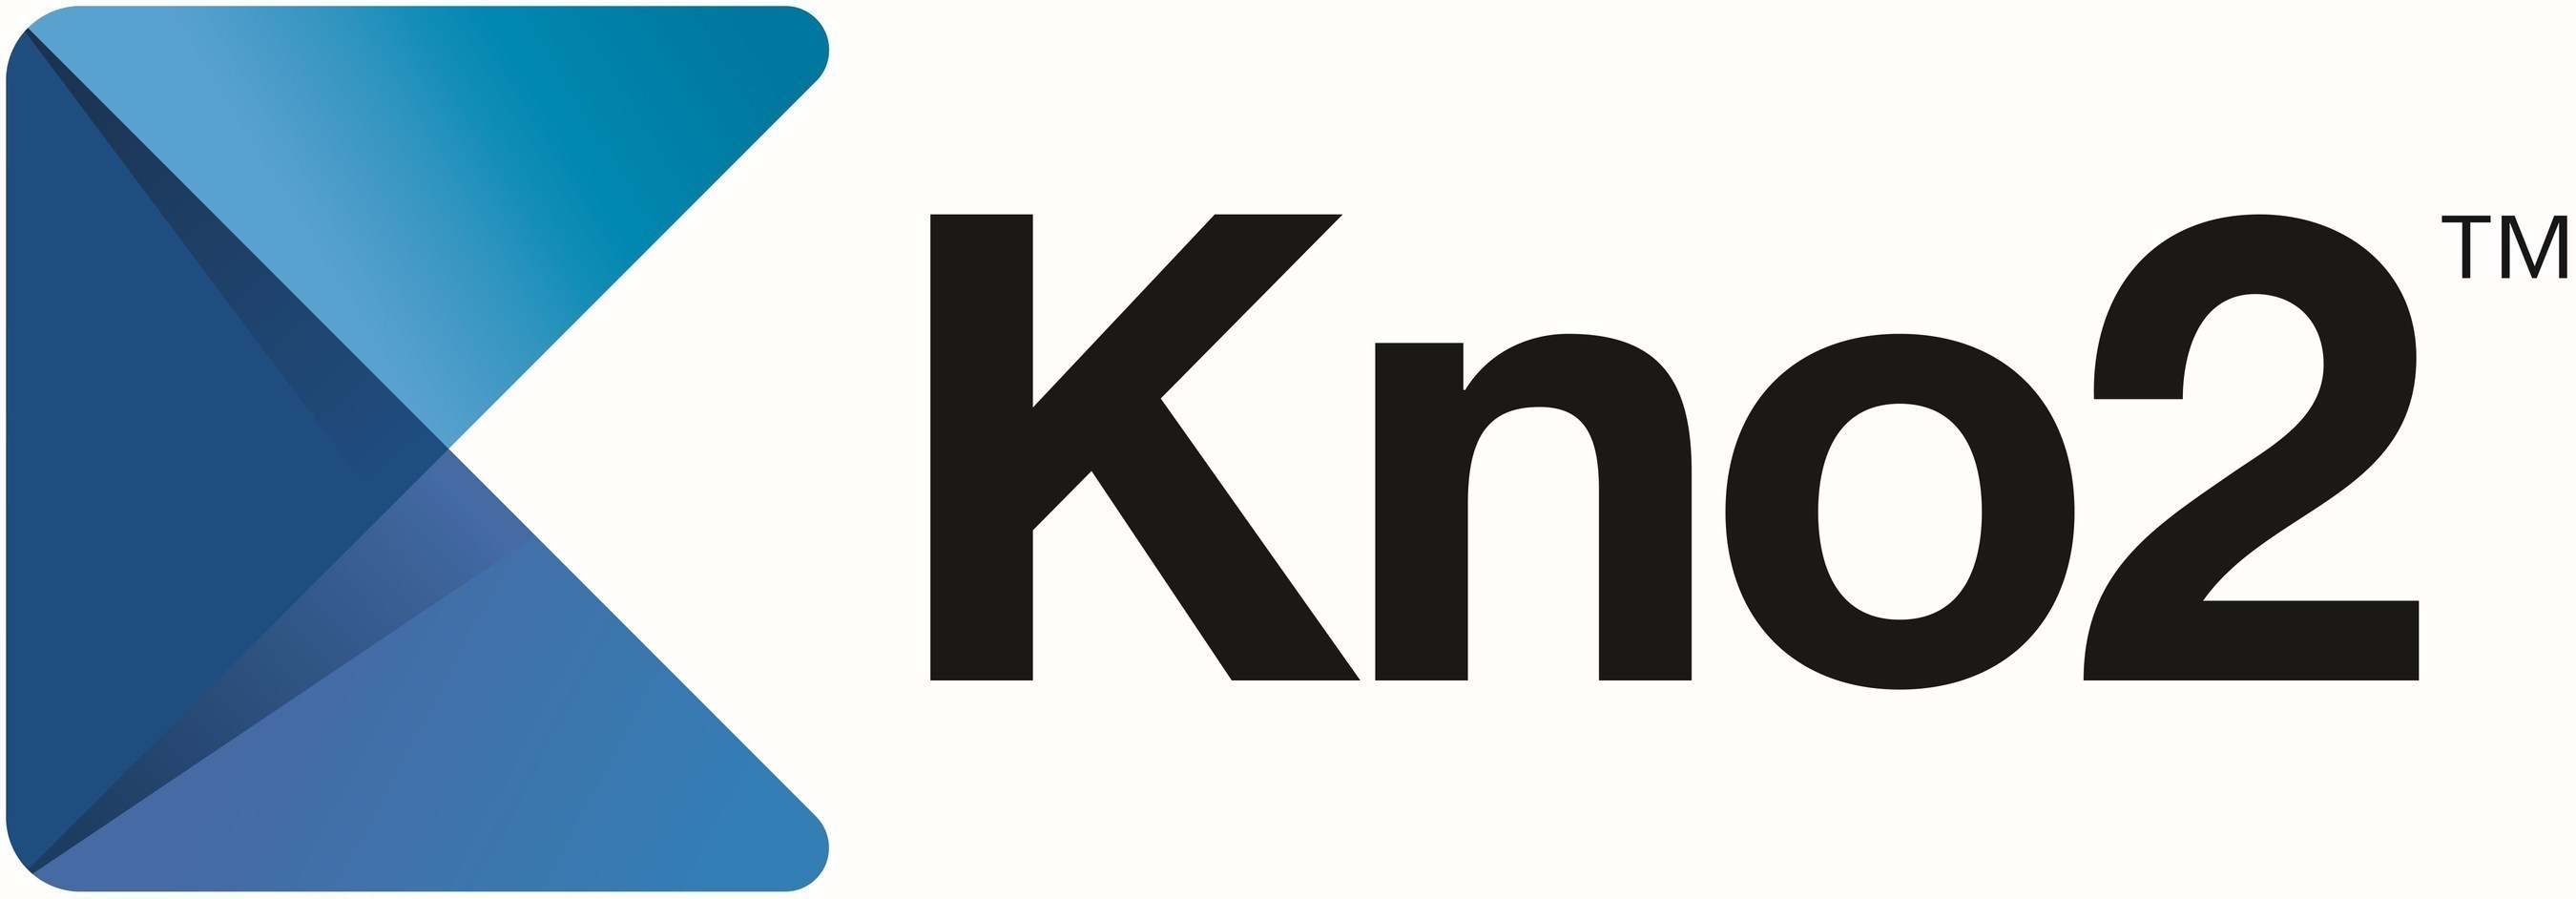 CoCENTRIX Selects Kno2 to Enhance Interoperability of Coordinated Care Platform